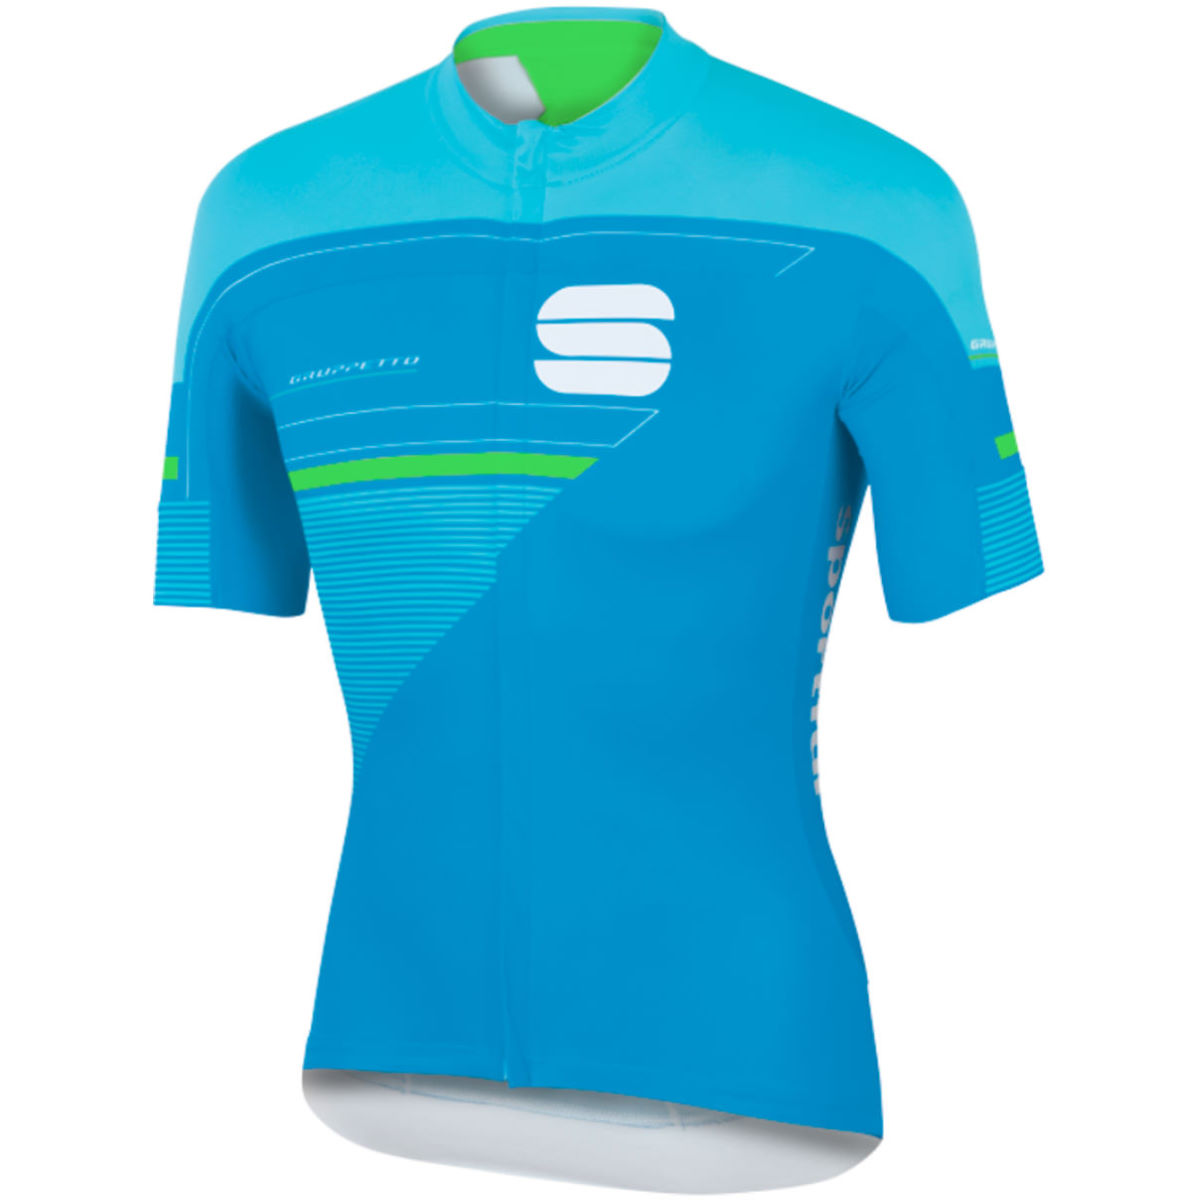 Maillot Sportful Gruppetto Pro LTD - XXL Blue/Green Maillots vélo à manches courtes